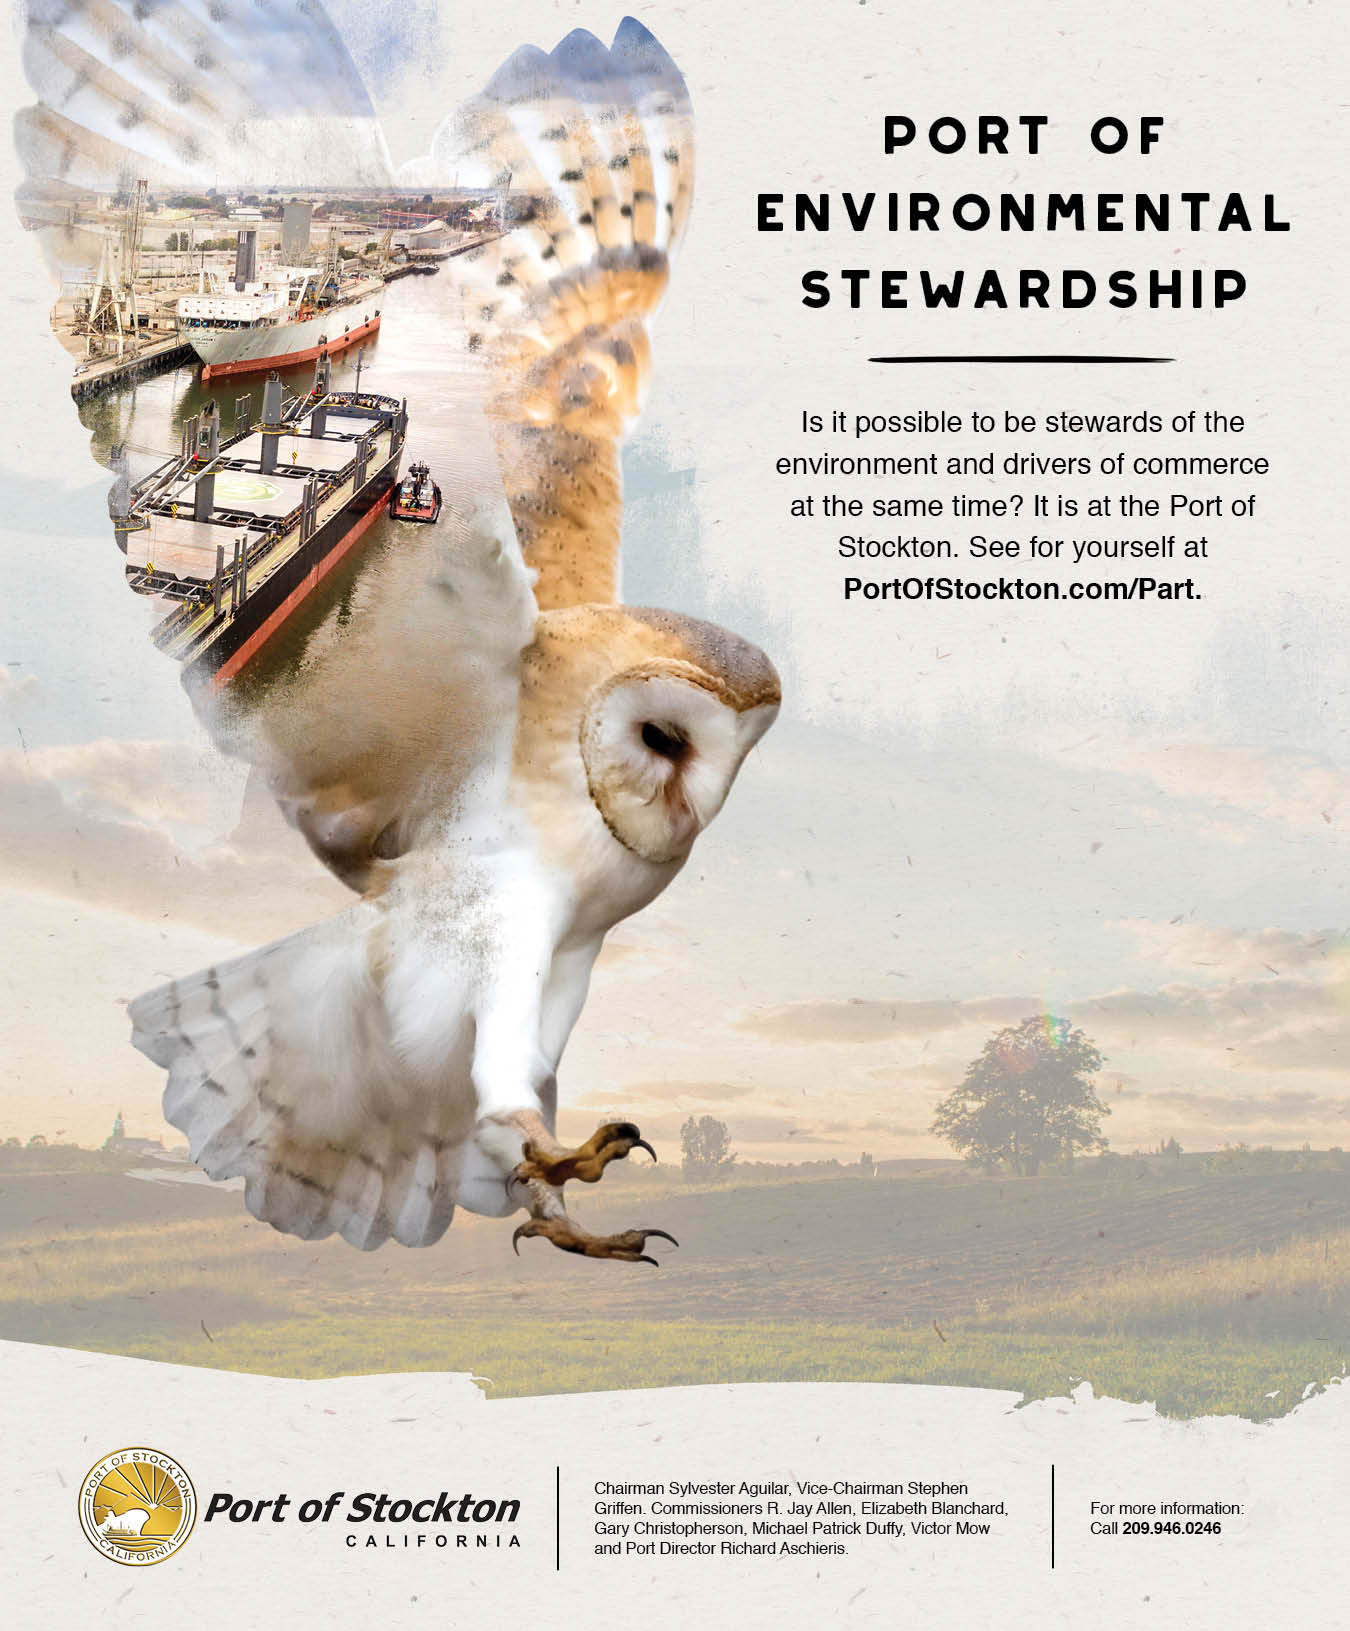 Port of Environmental Stewardship